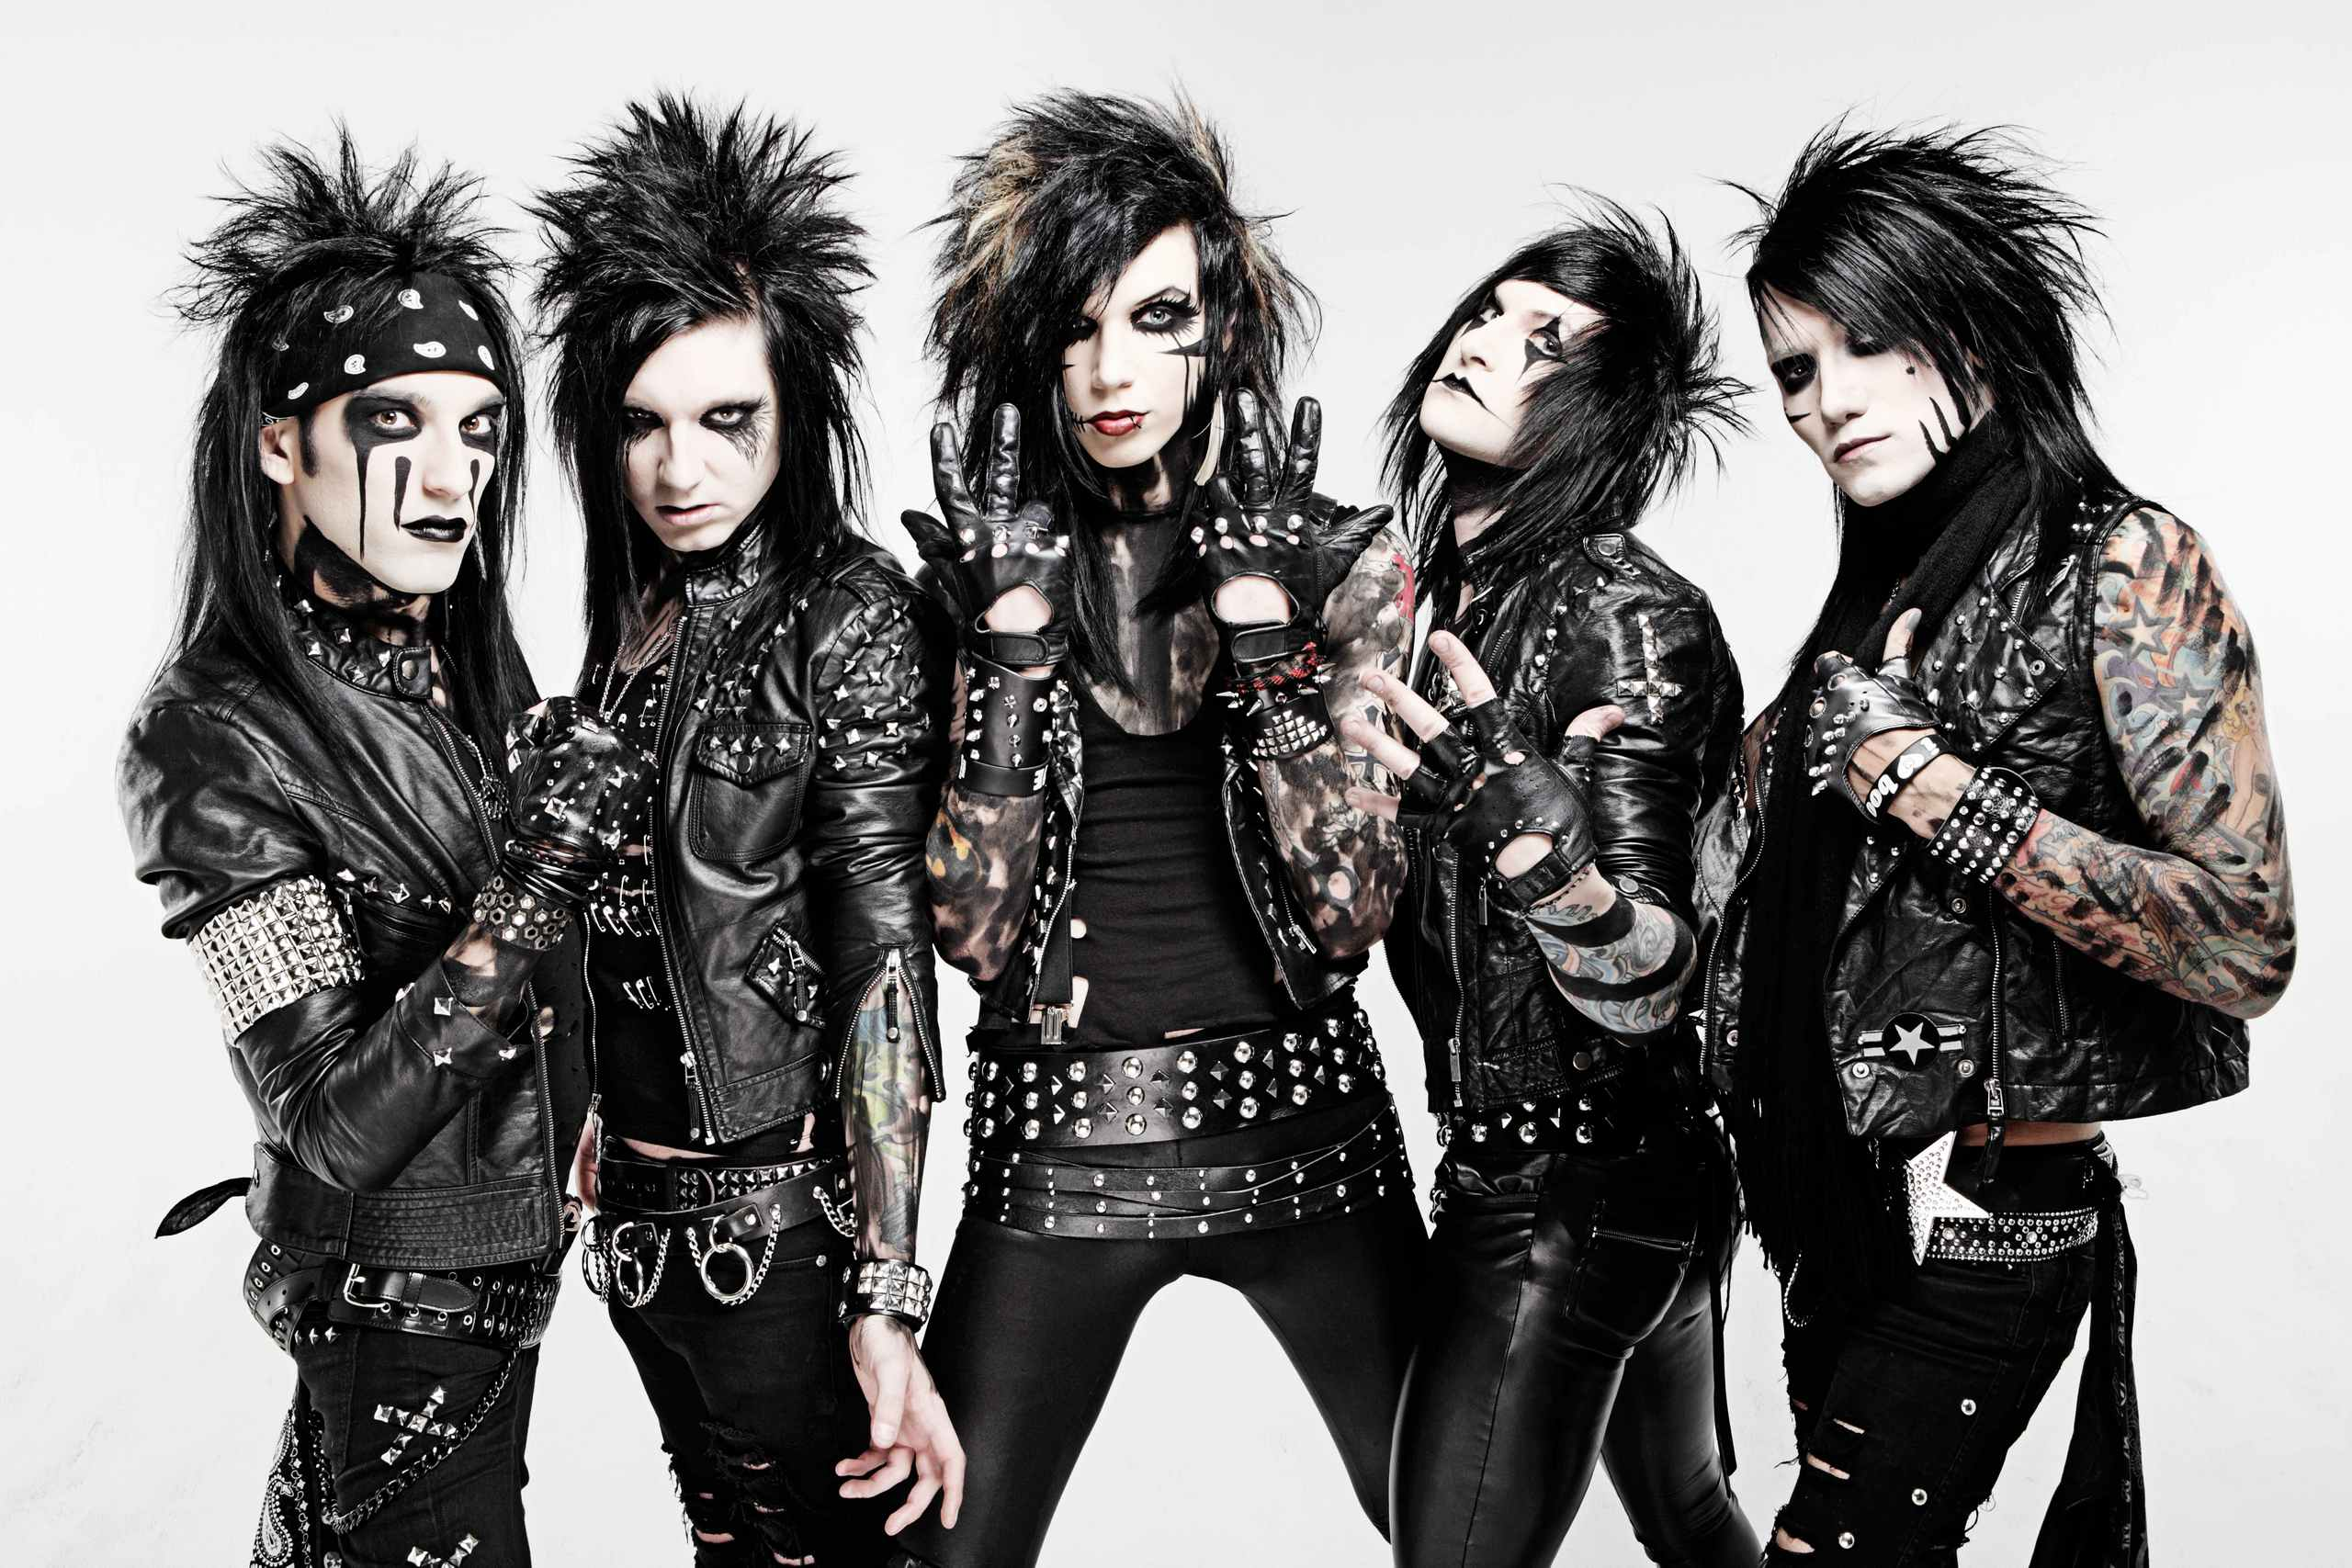 Fallen angels bvb